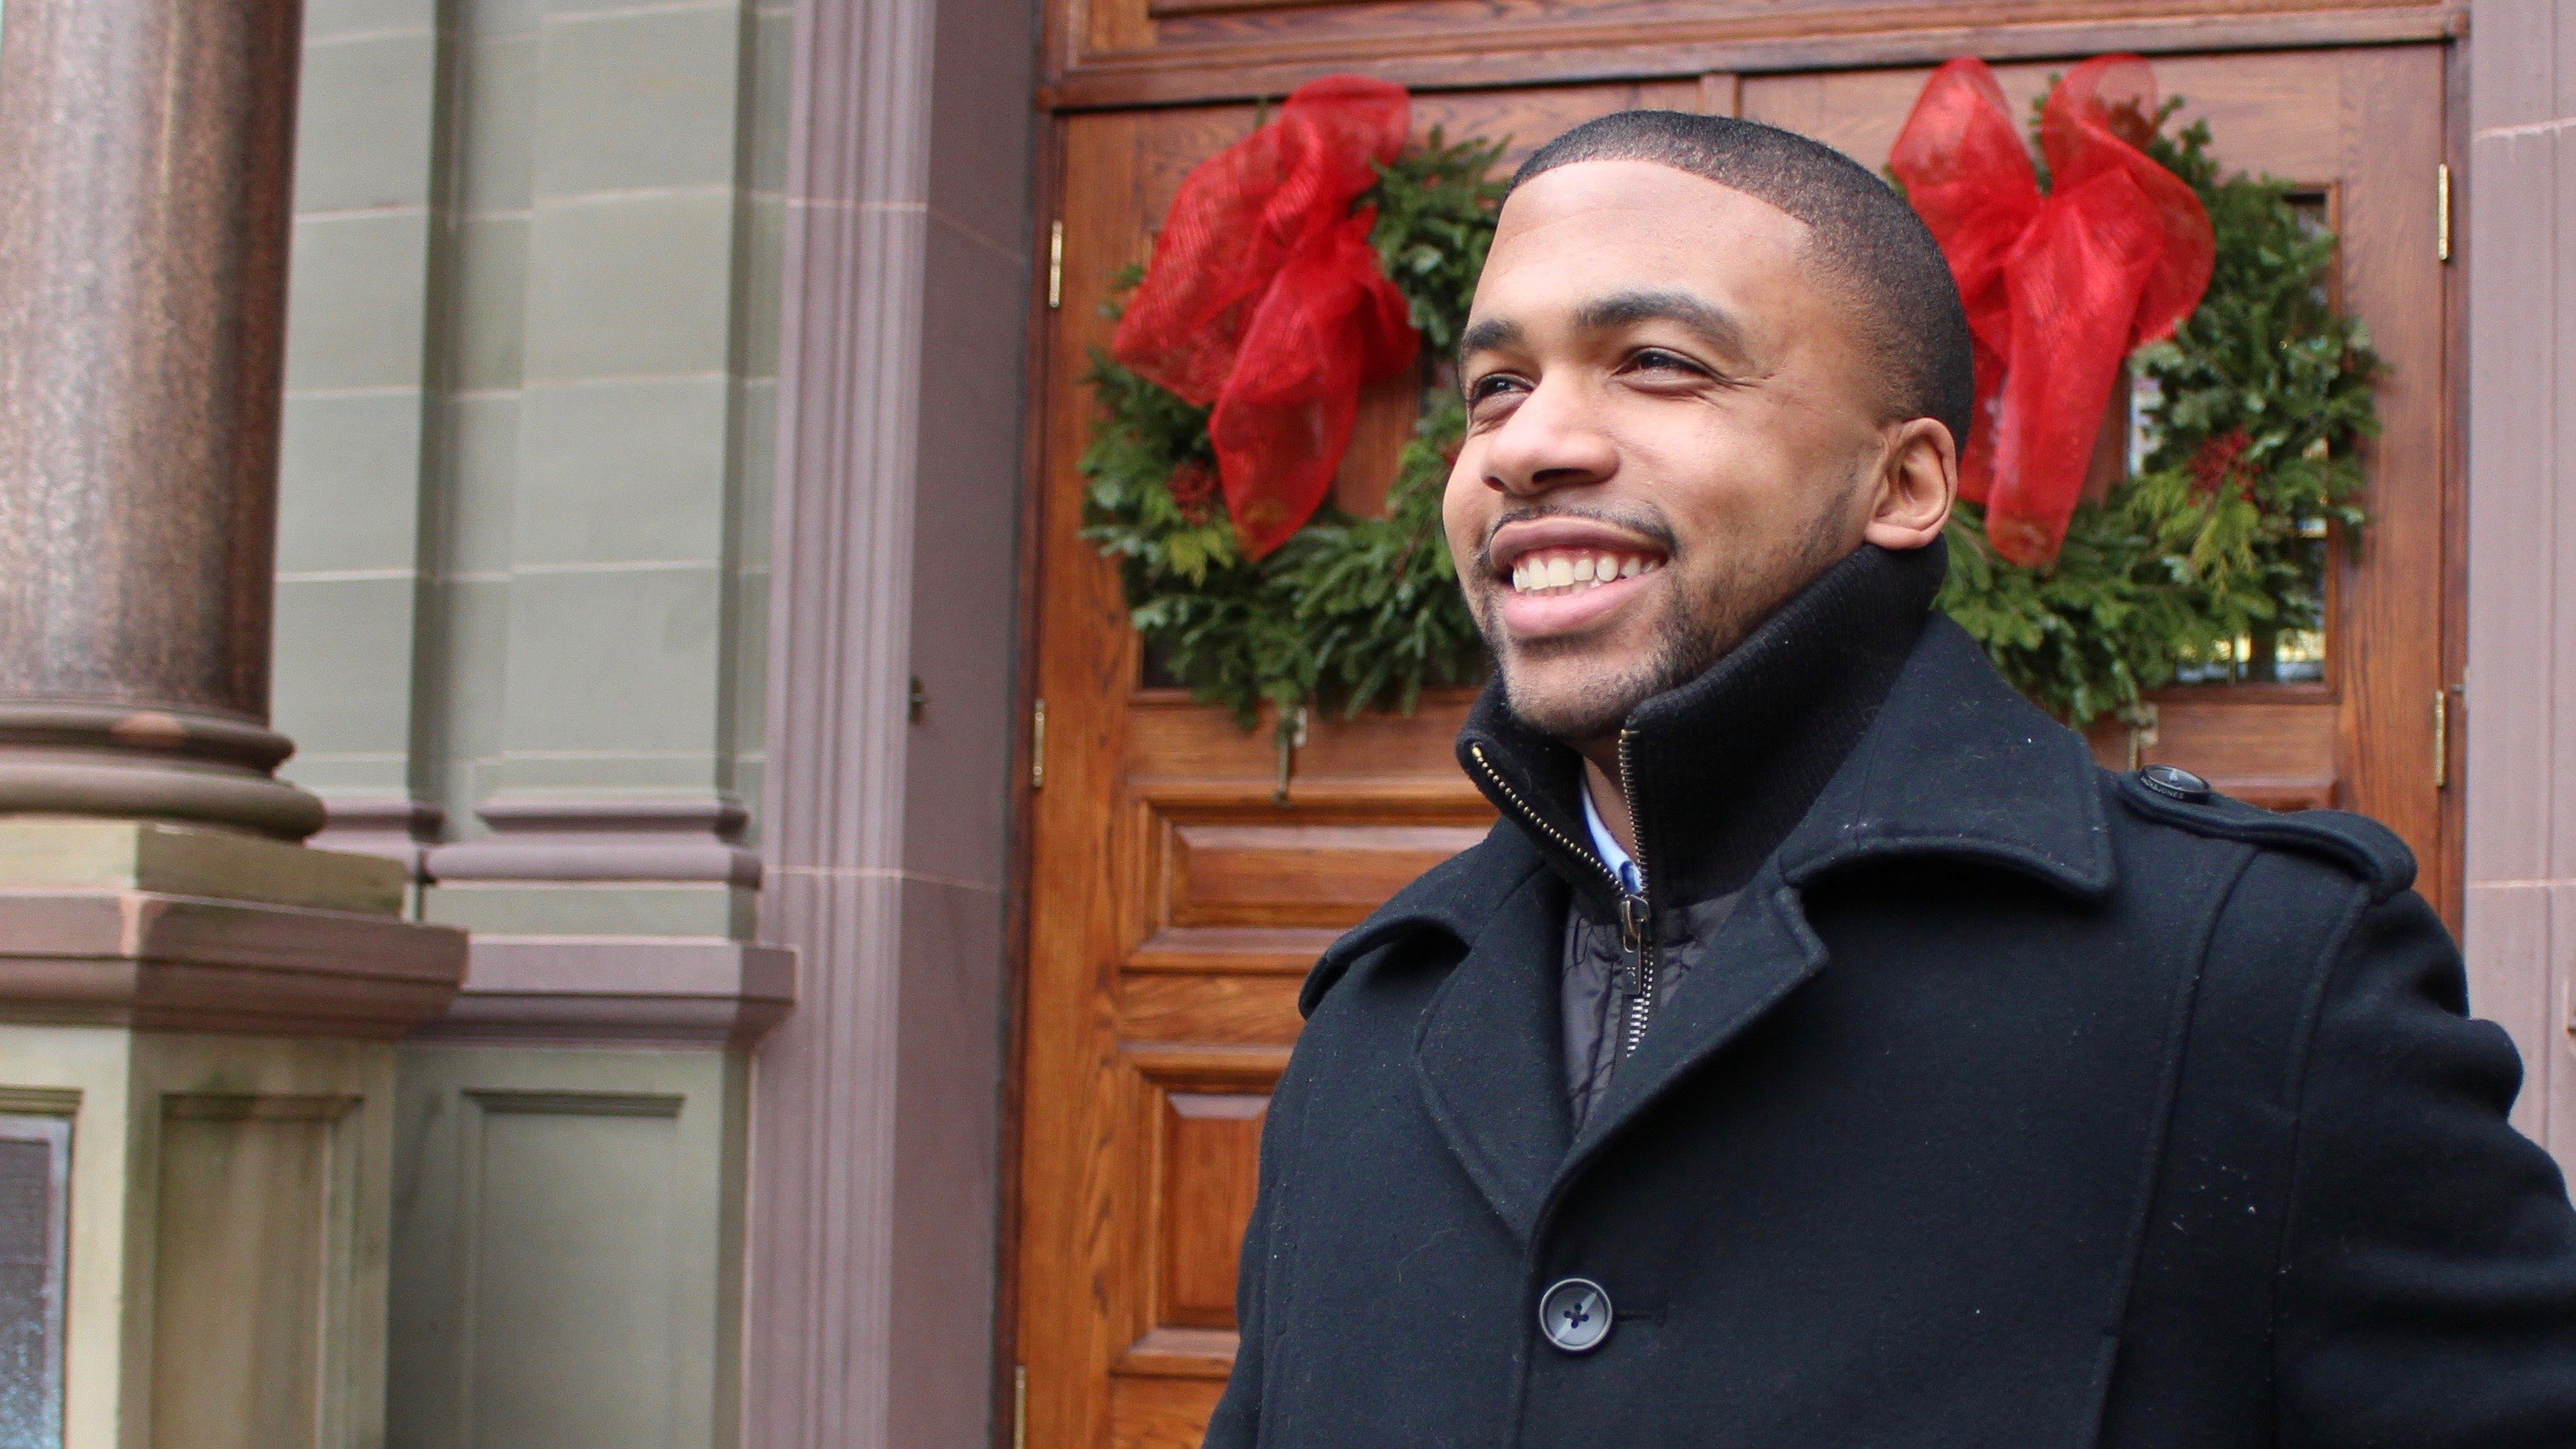 DeRico Symonds is starting his own fundraiser this Christmas season.